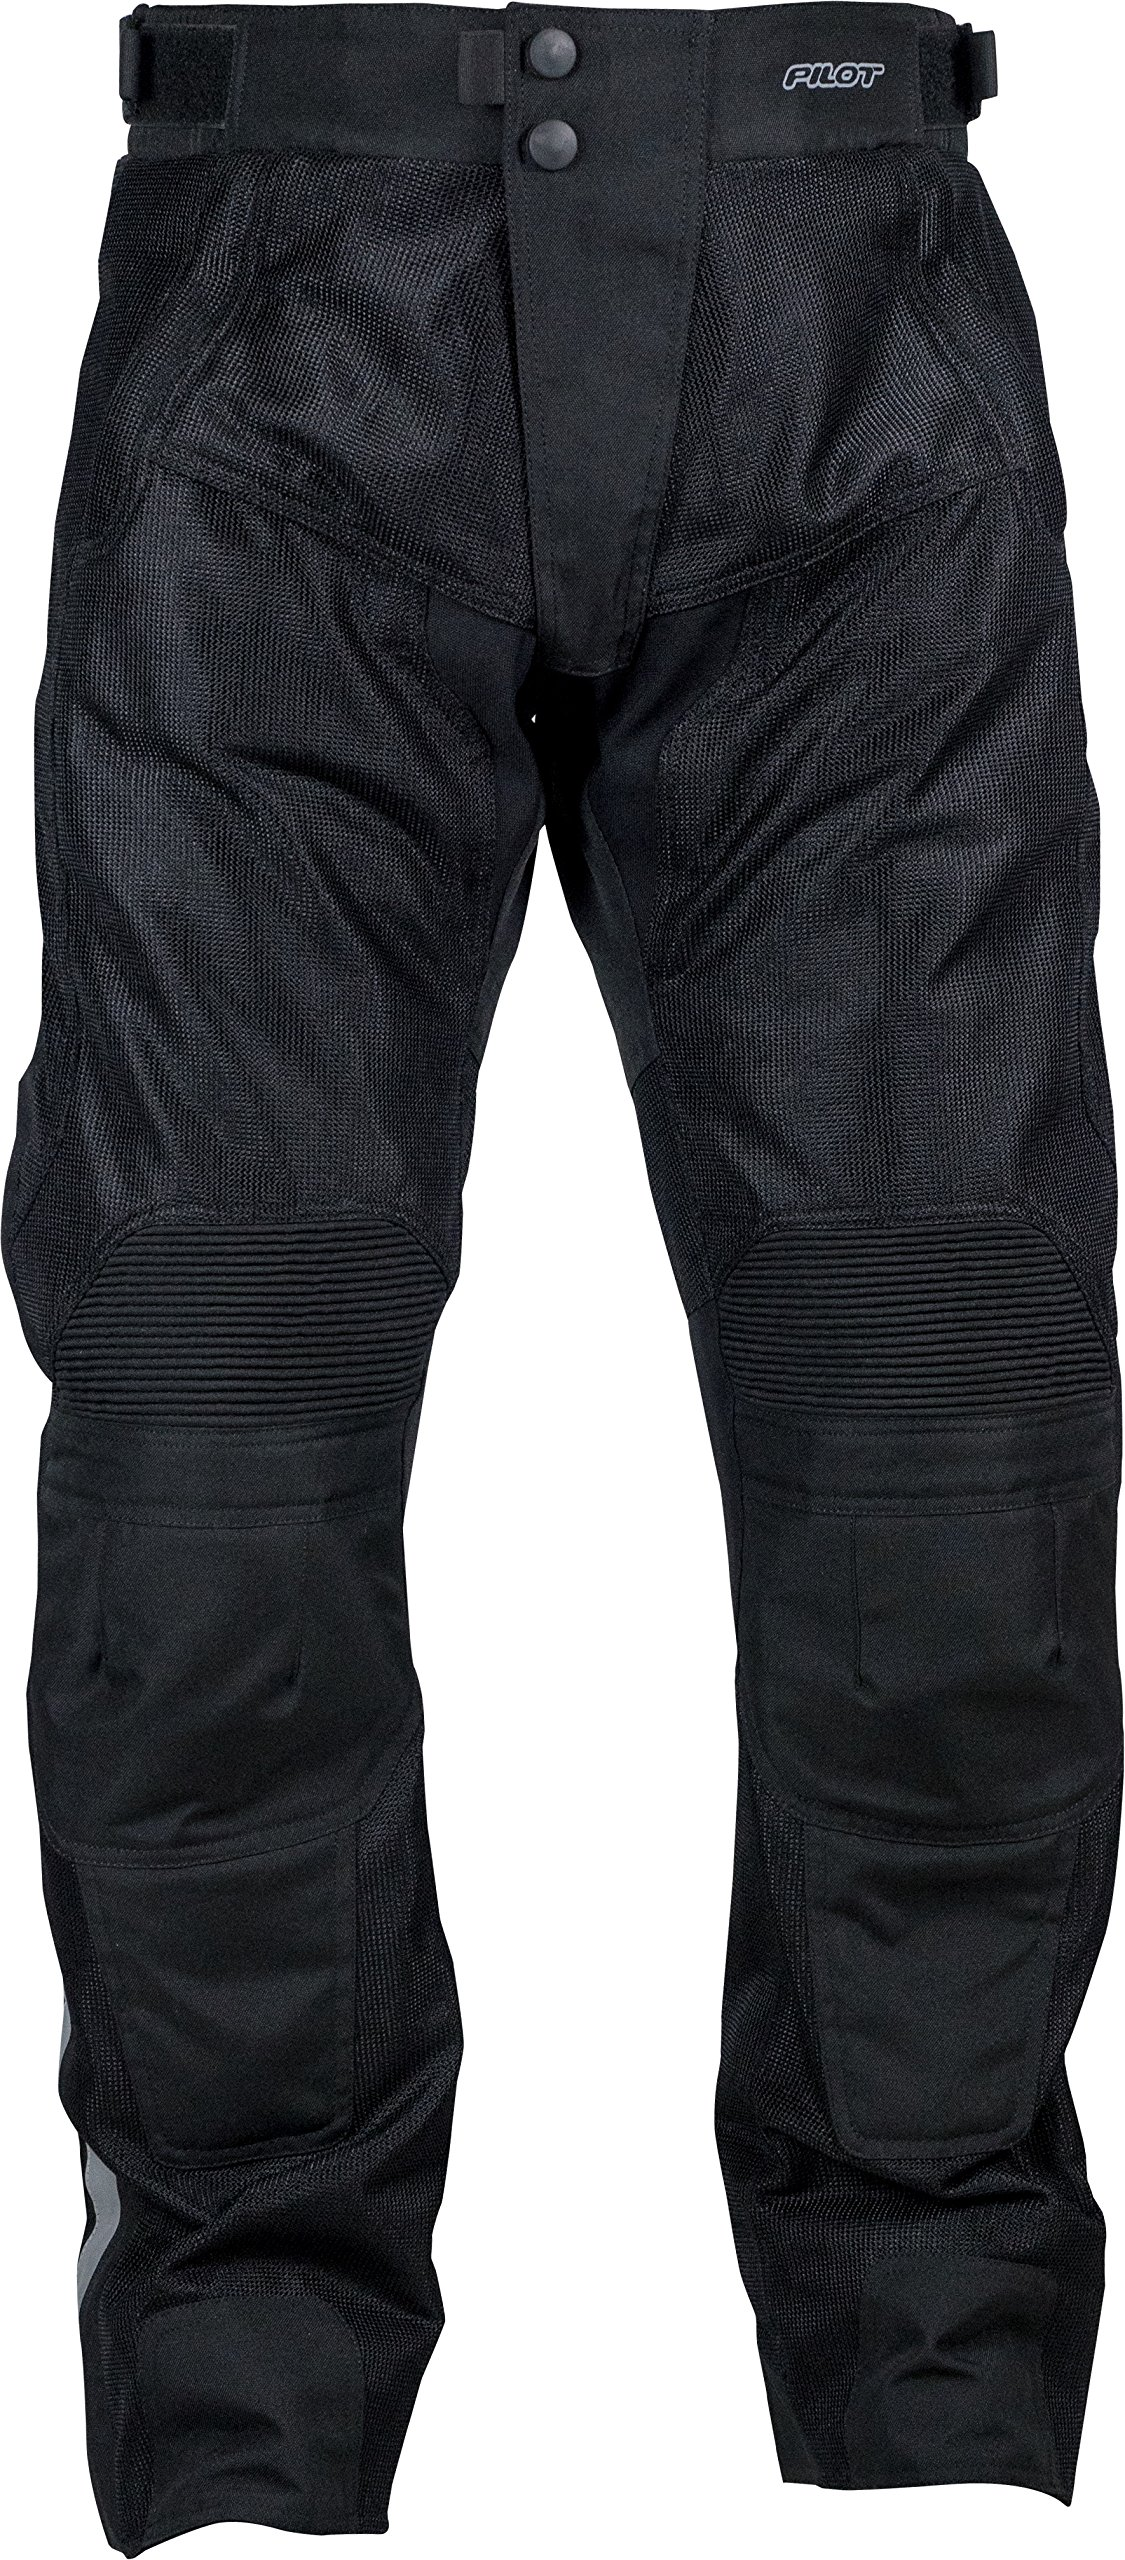 Pilot Motosport Men's Omni Air Mesh Motorcycle Over Pants (34-36, V2) (Black, Large)